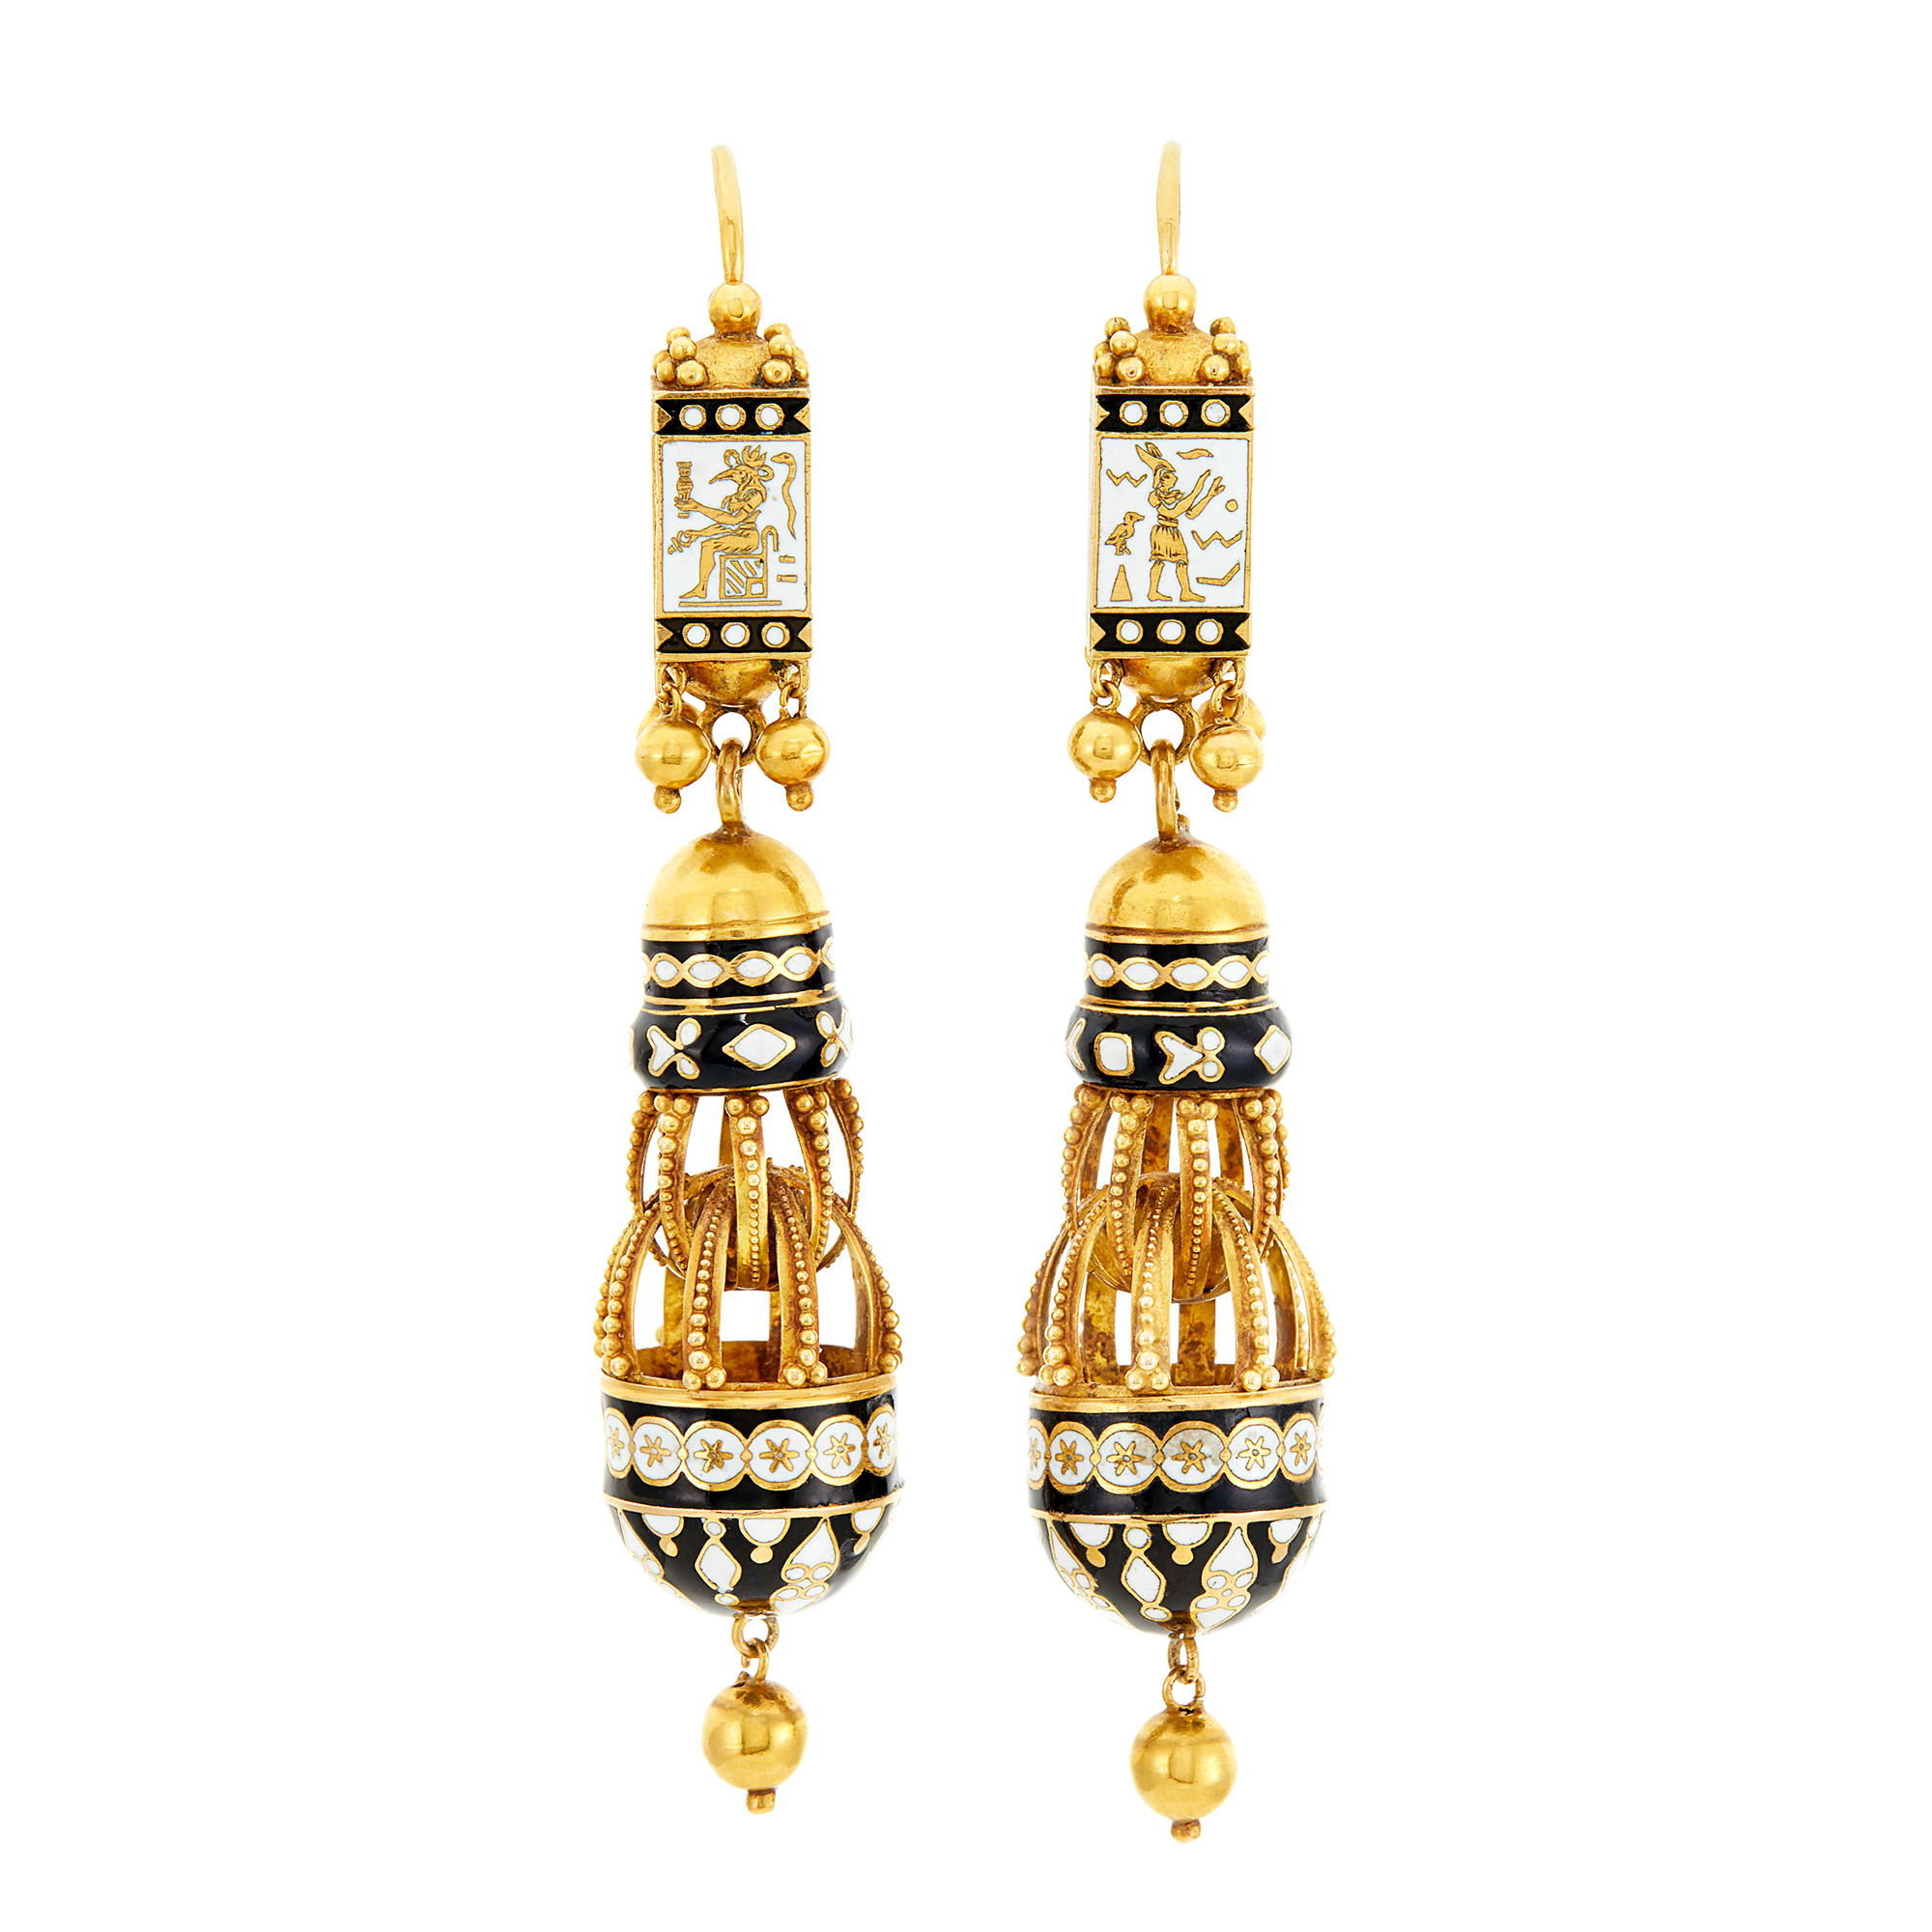 Lot image - Pair of Antique Gold and Black and White Enamel Pendant-Earrings, France